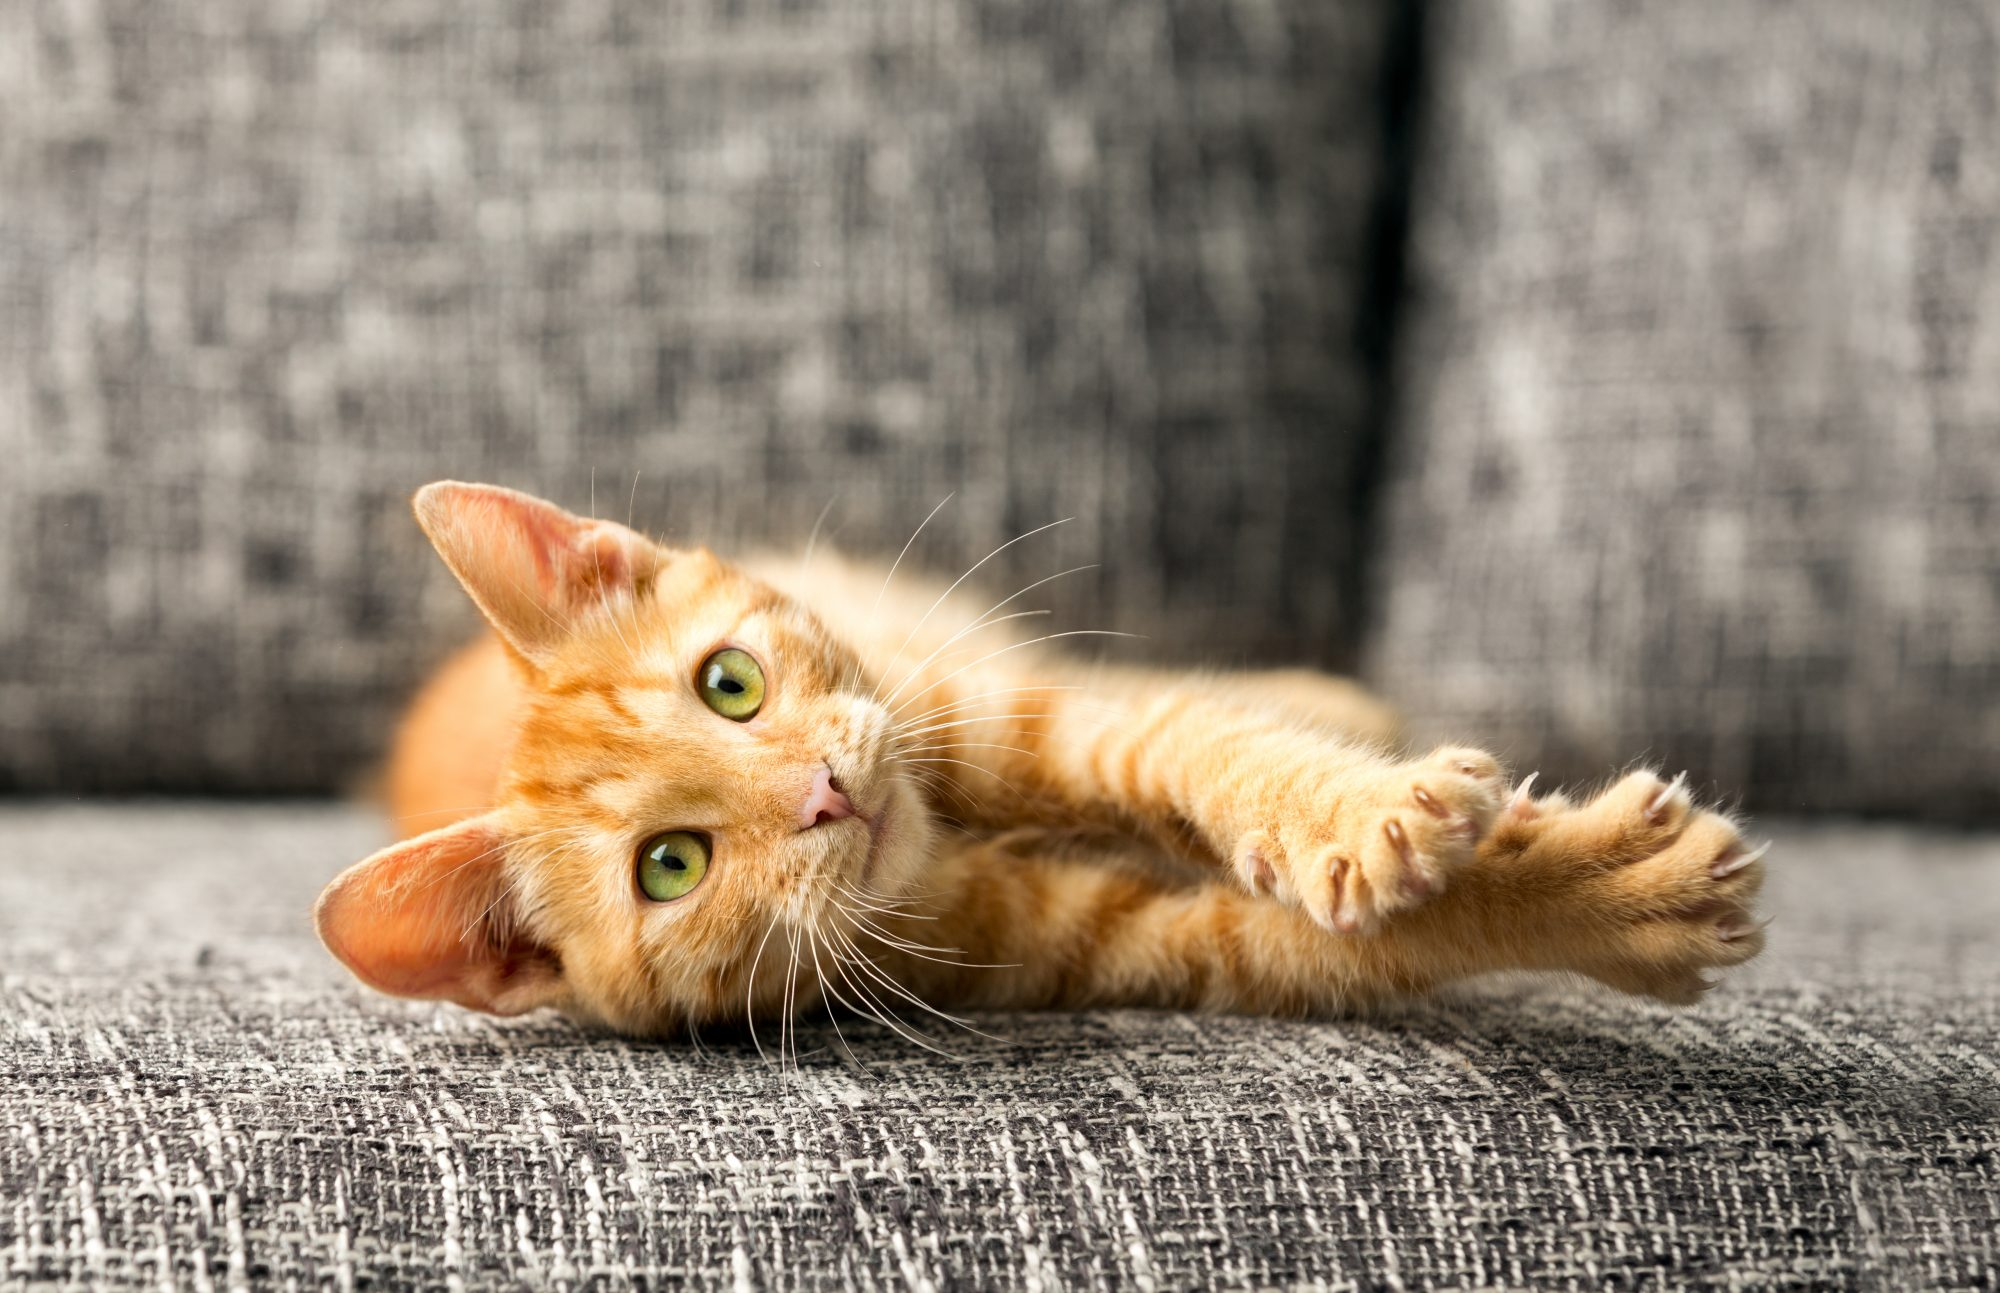 <p>Cat lying on a couch</p>